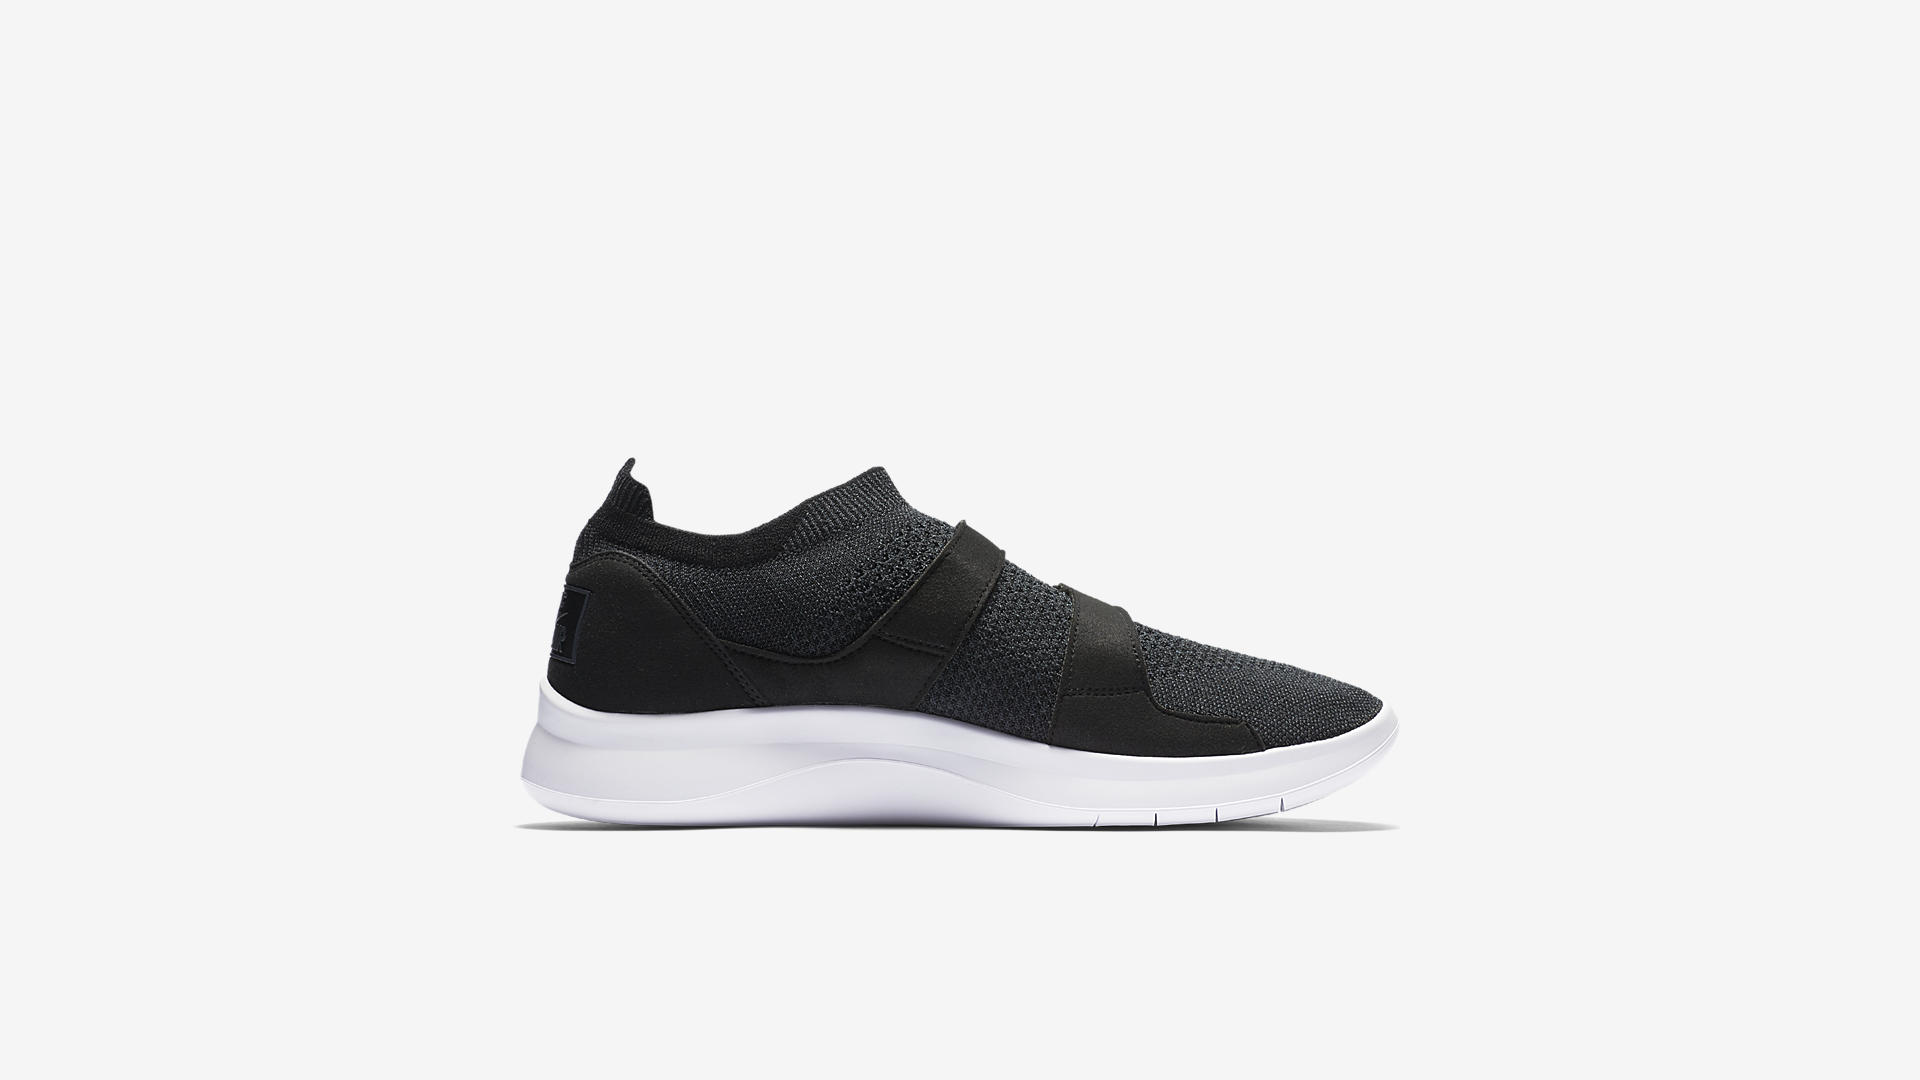 Nike Air Sock Racer Ultra Flyknit Anthracite 898022 001 2